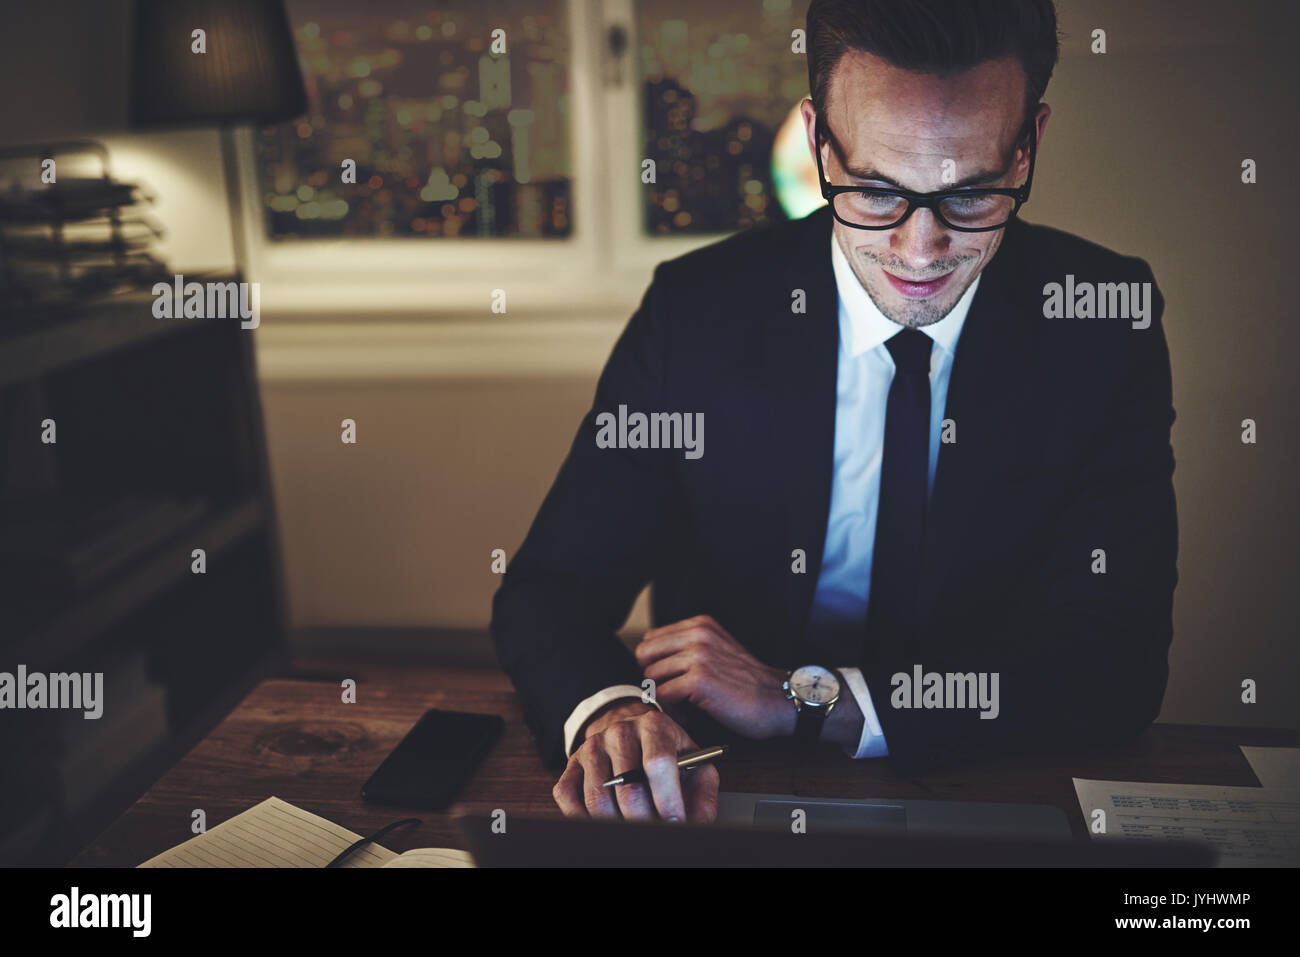 Smiling businessman working on laptop at night sitting in office looking concentrated - Stock Image